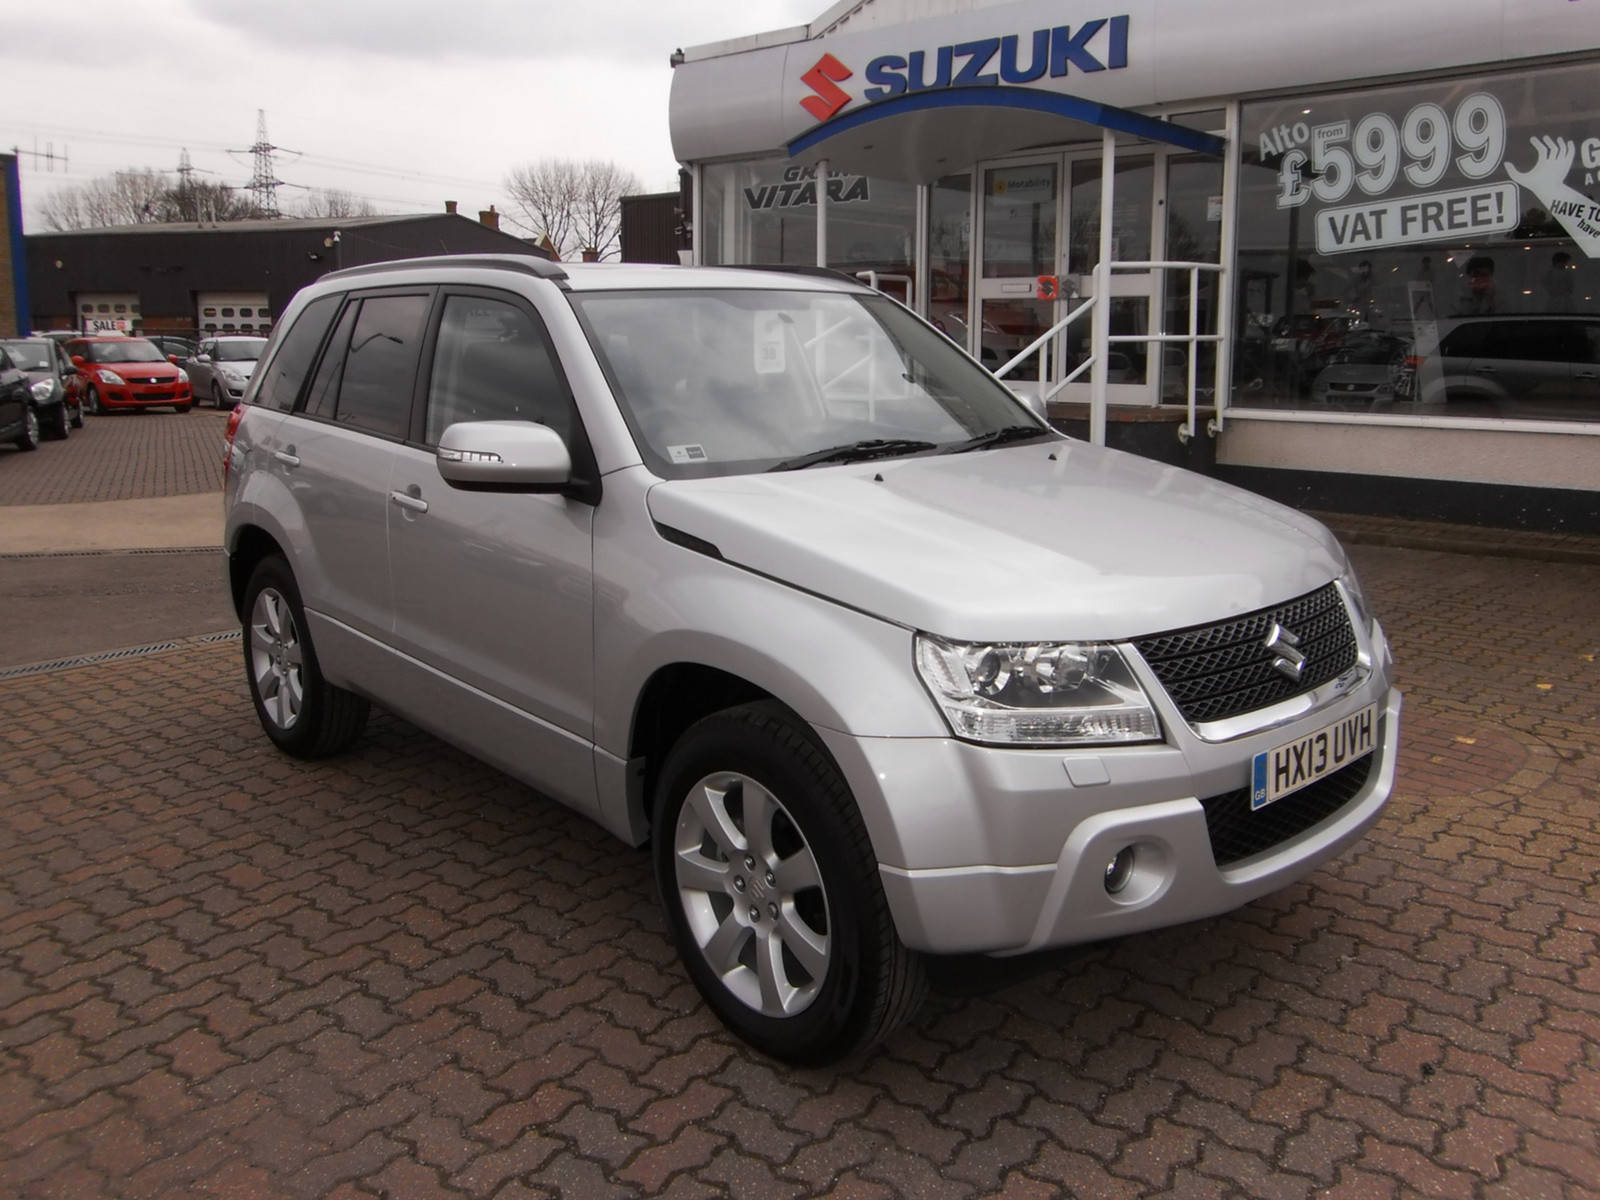 Suzuki Grand Vitara SZ5